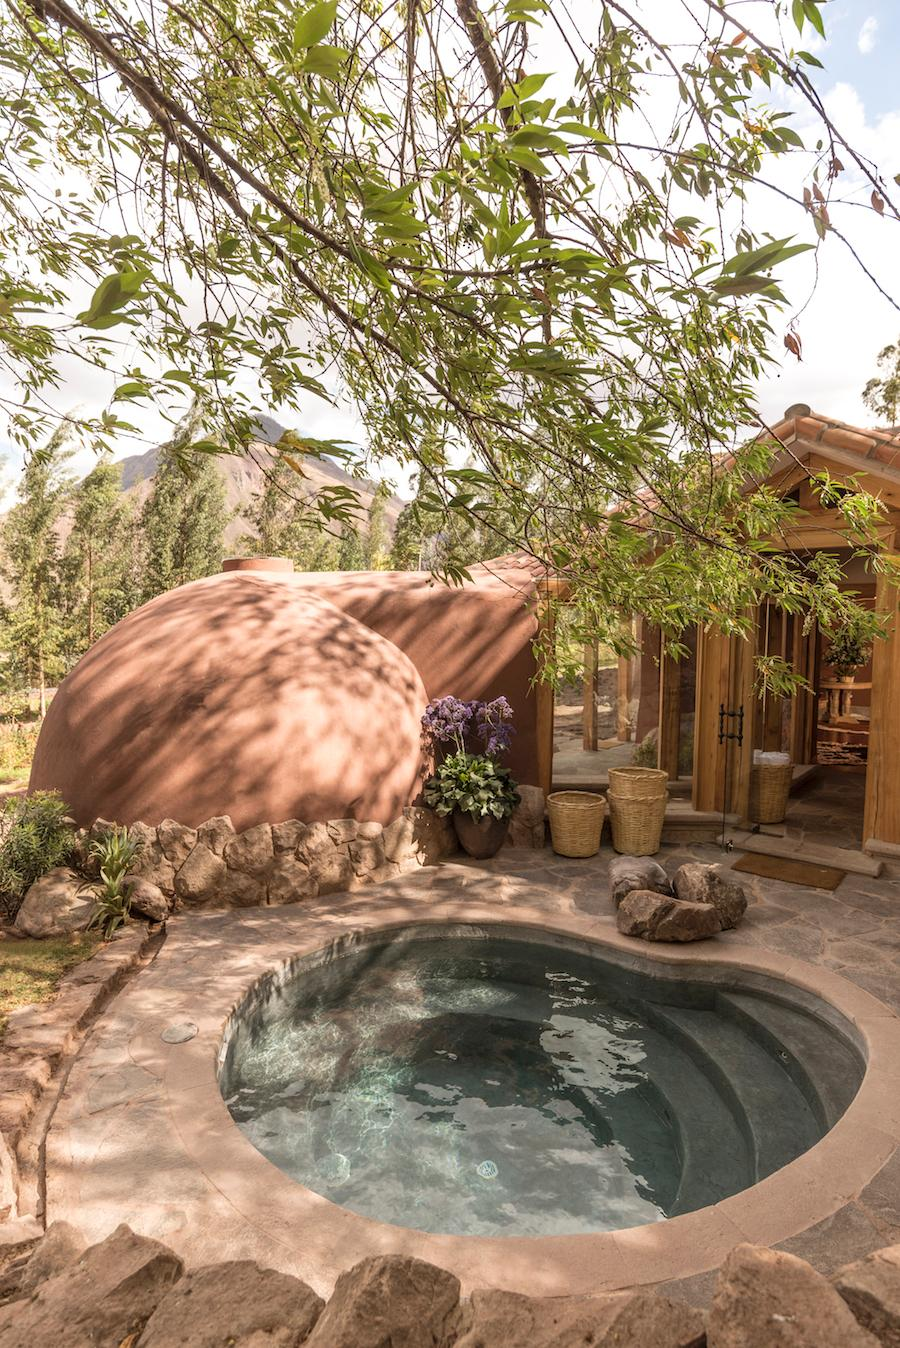 Treatments are based on 100 per cent natural products derived from medicinal herbs, and the wellness centre includes a plunge pool, four private therapy rooms and a dry sauna